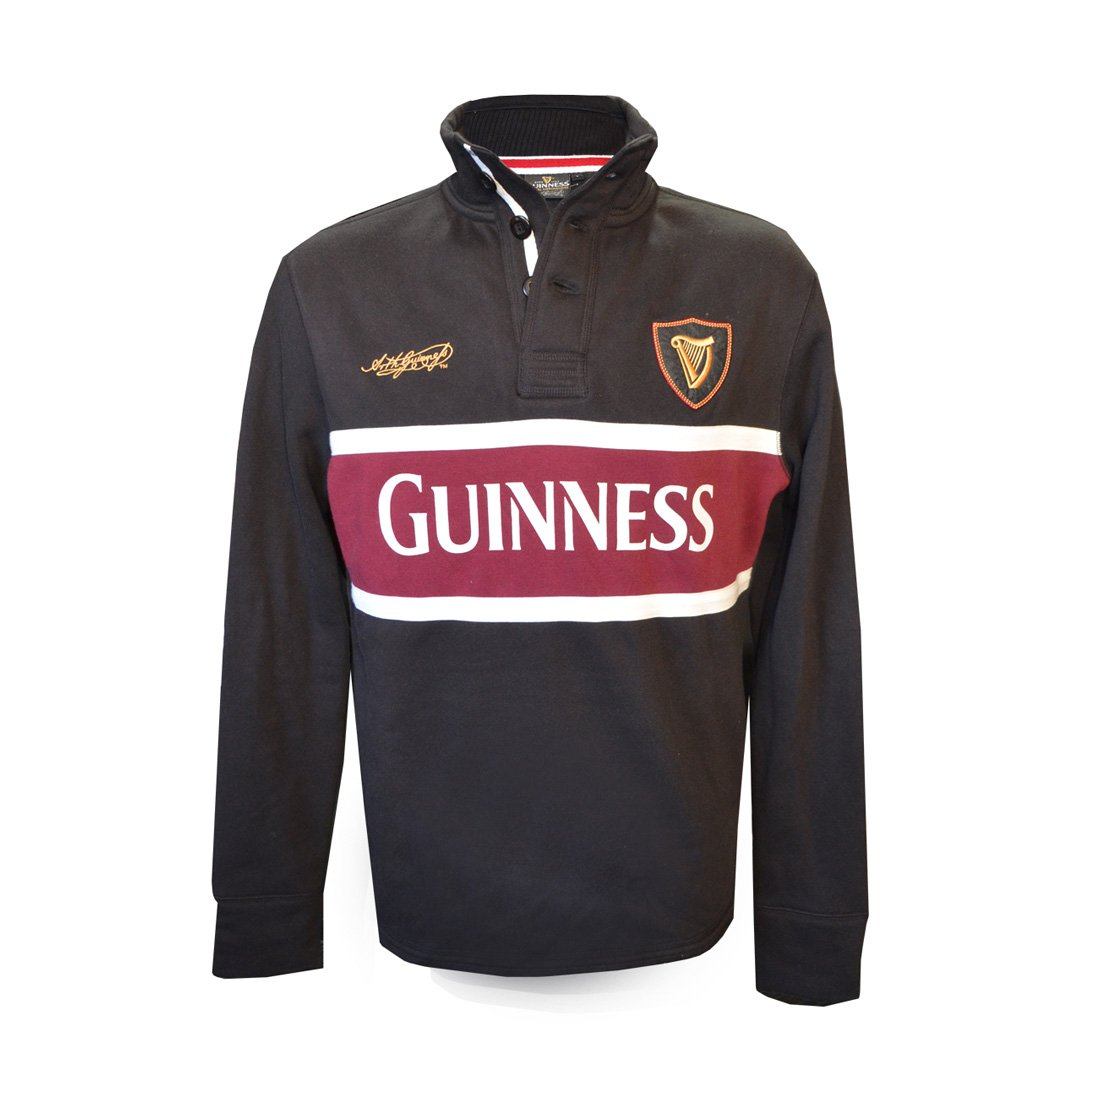 Guinness Long Sleeve Polo Shirt (Large) G5133